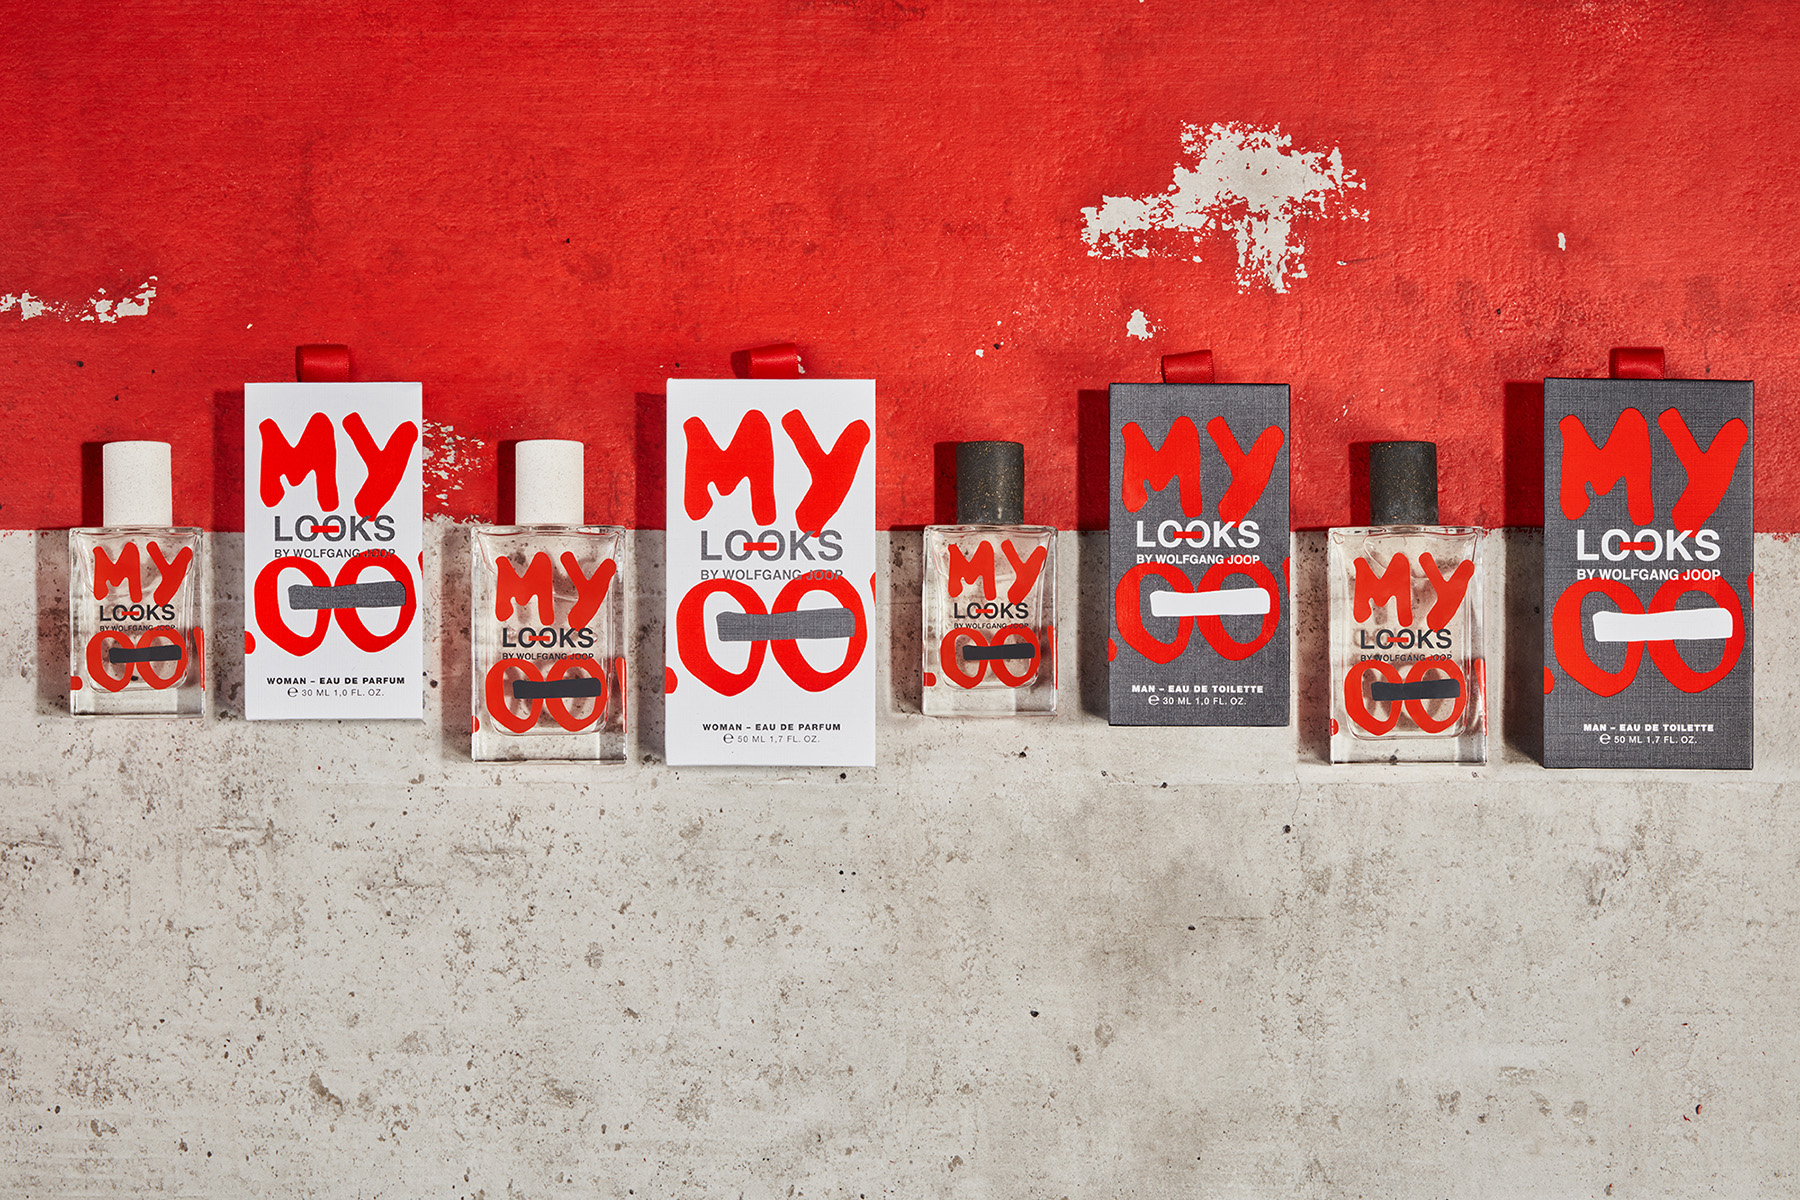 Design of Fragrances for Looks by Wolfgang Joop from Brandcouture